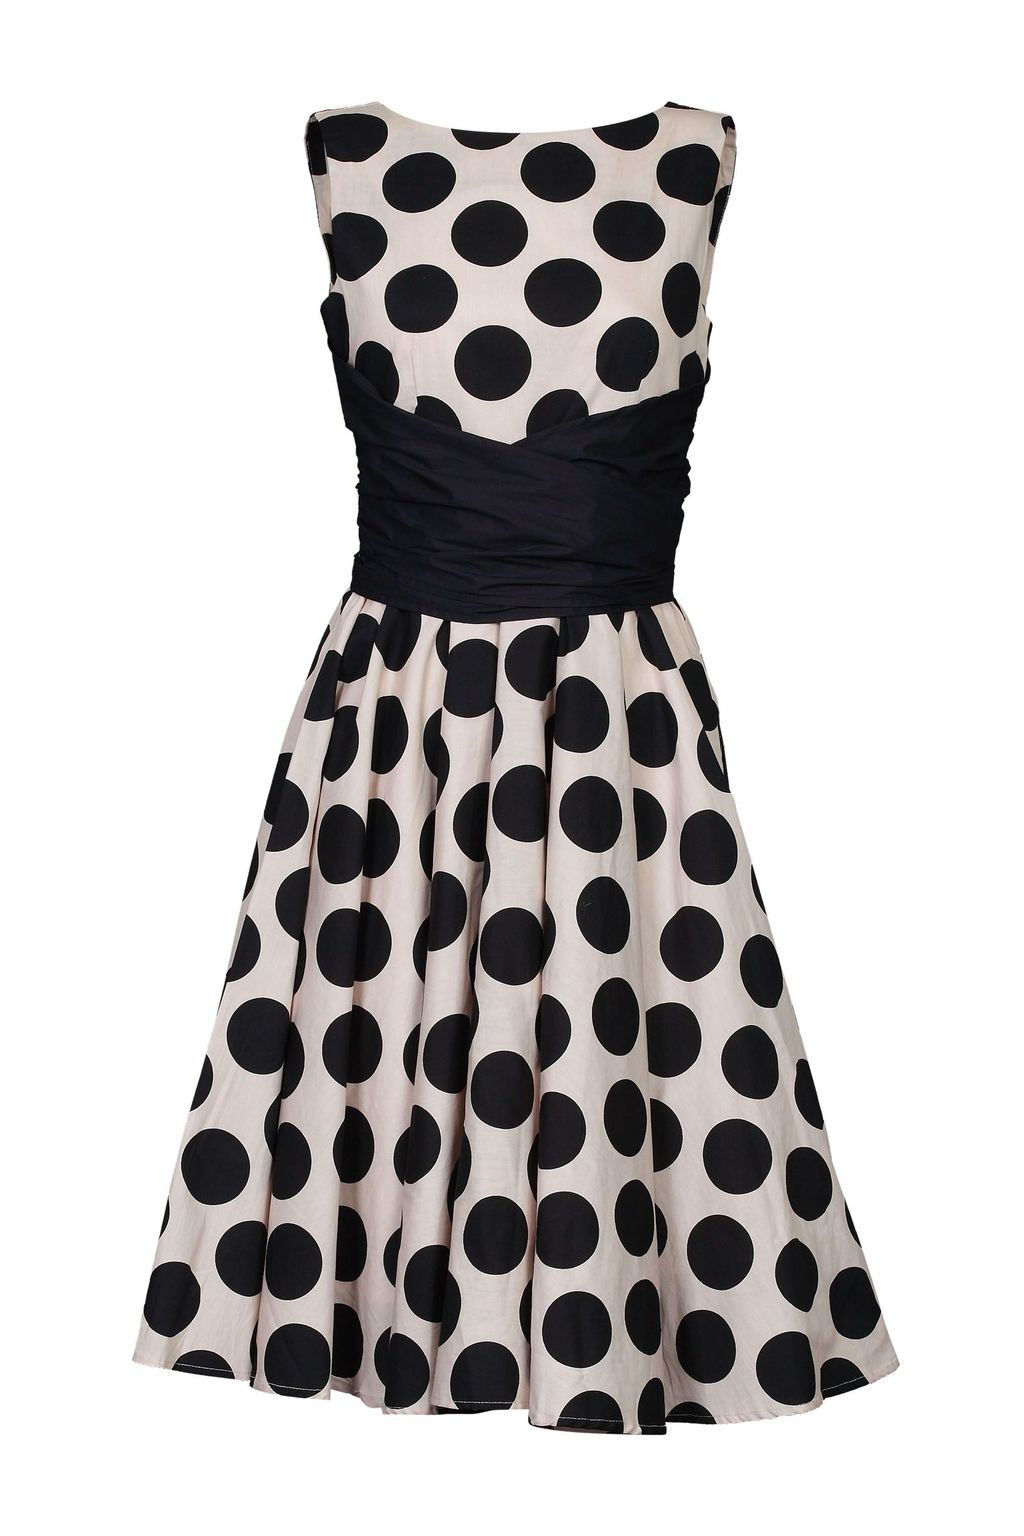 Wrapped Waist Polka Dot Dress, Black - neckline: round neck; sleeve style: sleeveless; pattern: polka dot; secondary colour: ivory/cream; predominant colour: black; length: just above the knee; fit: fitted at waist & bust; style: fit & flare; fibres: cotton - 100%; occasions: occasion; hip detail: subtle/flattering hip detail; sleeve length: sleeveless; pattern type: fabric; texture group: woven light midweight; season: a/w 2015; wardrobe: event